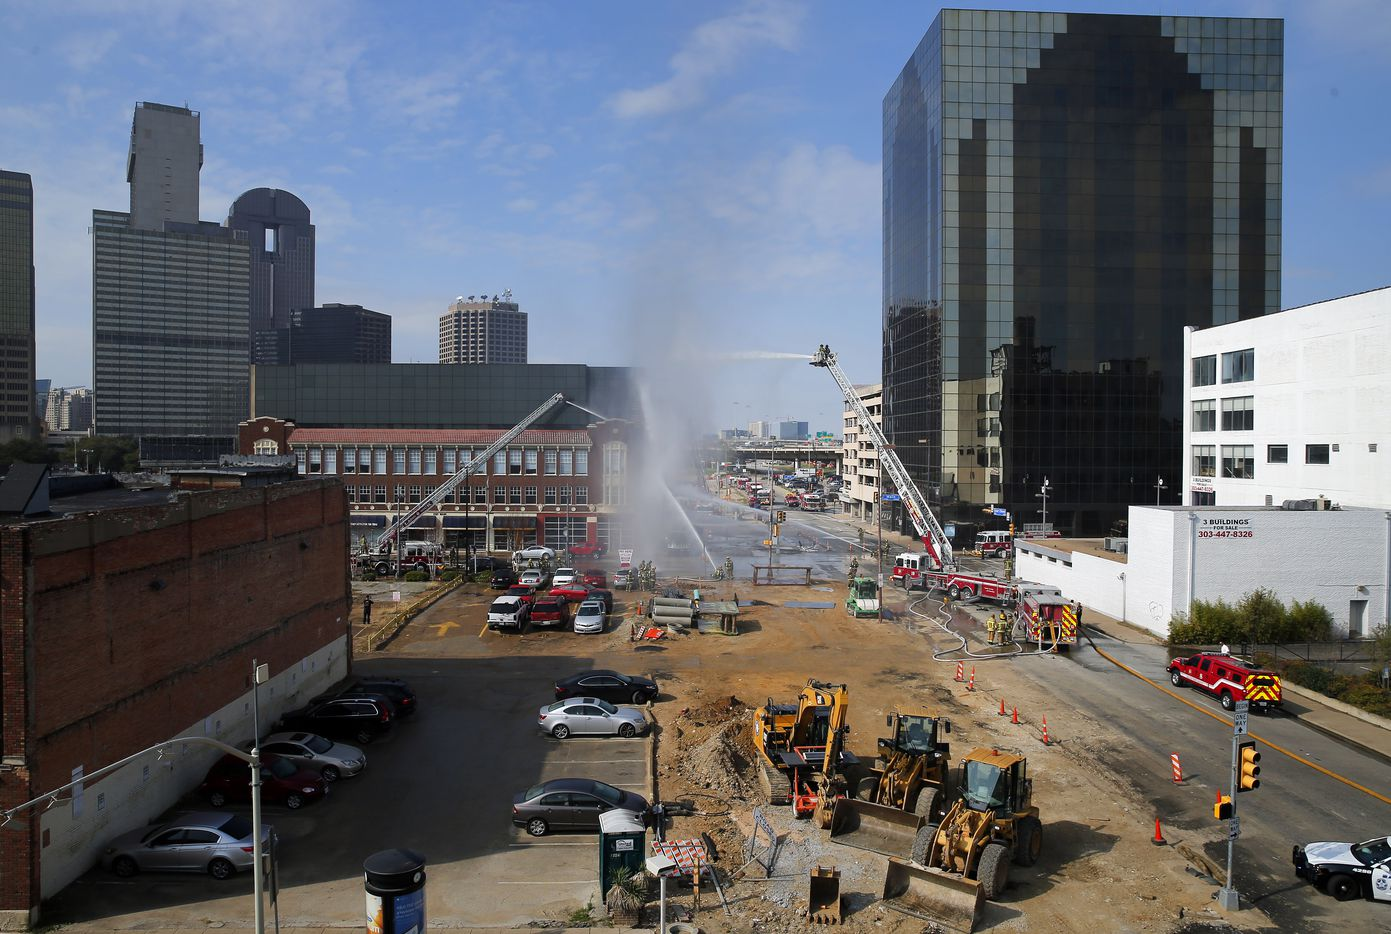 Dallas firefighters battle a fire caused by a ruptured gas line at a construction site along Cesar Chavez Blvd at Main St. in downtown Dallas, Friday, March 10, 2017.